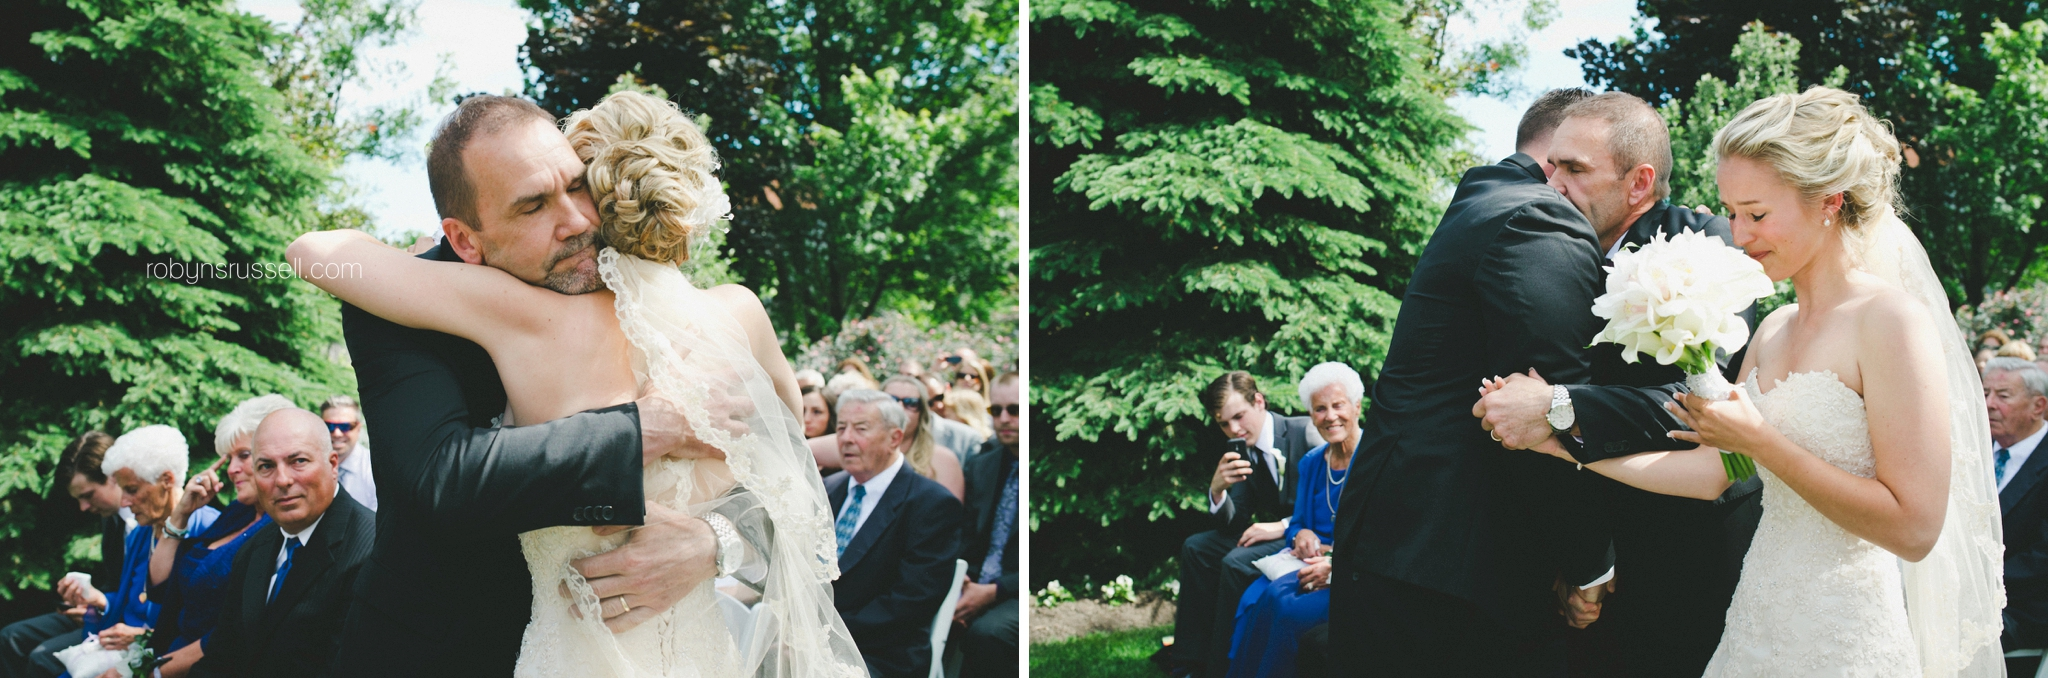 23-father-of-the-bride-gives-daughter-away-to-groom1.jpg